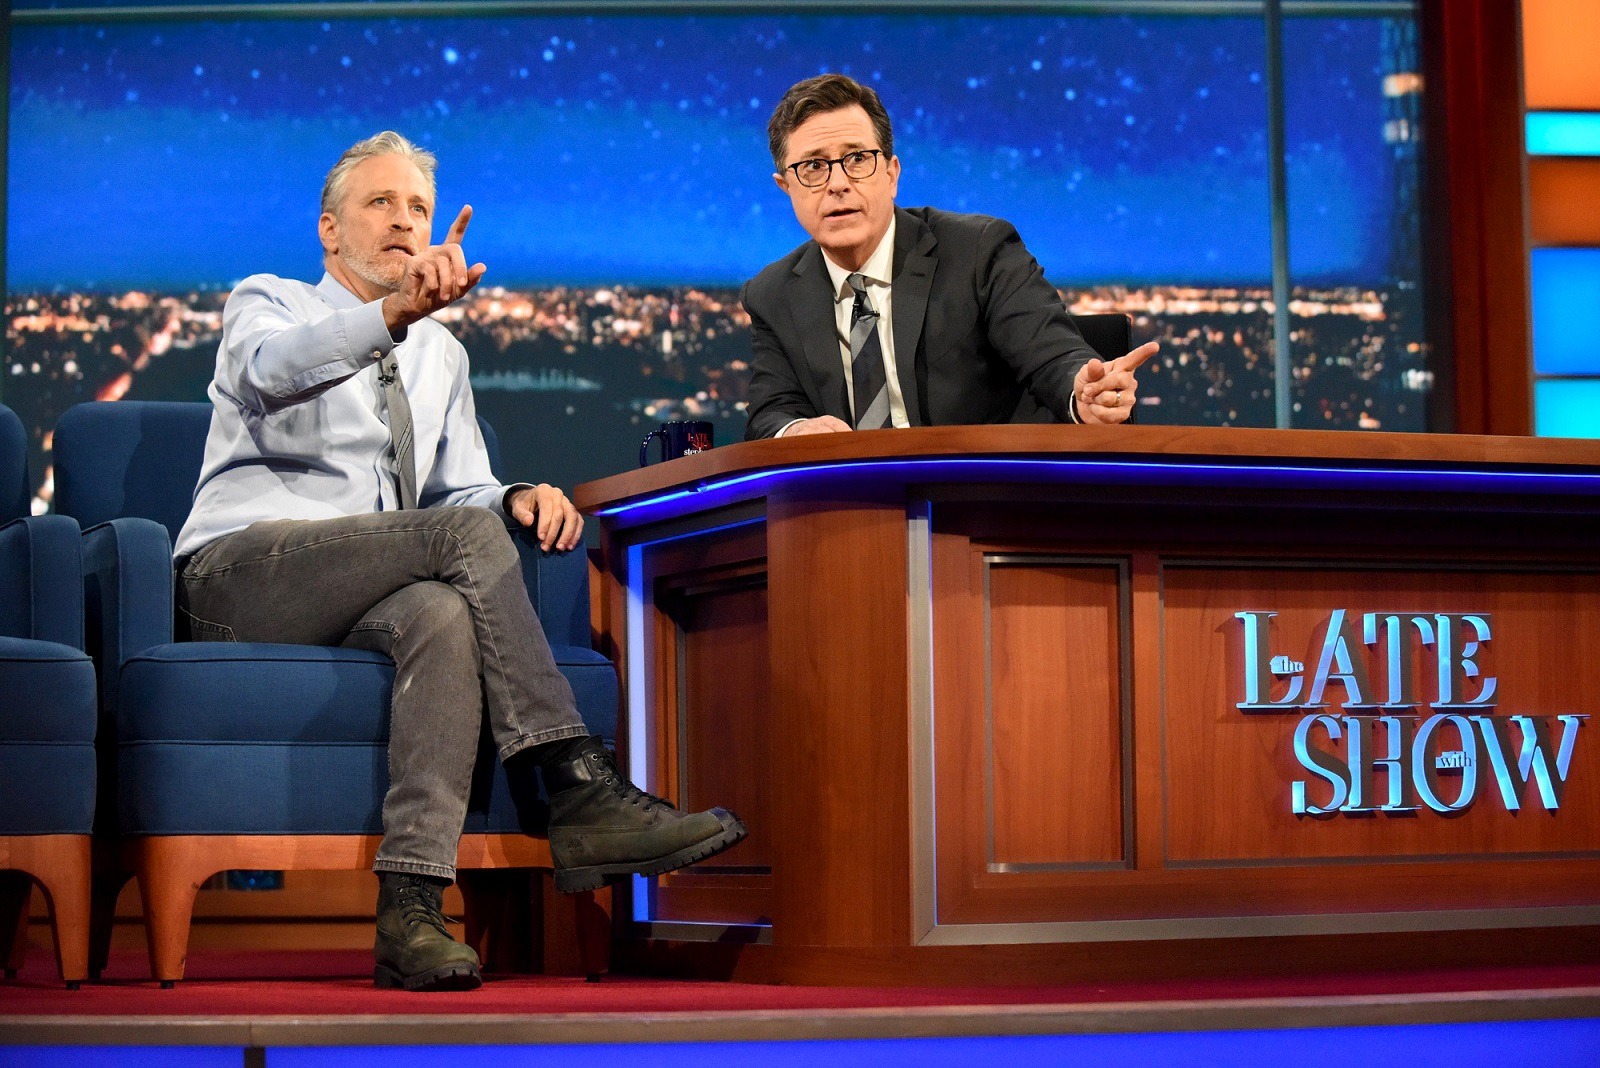 Stephen Colbert, here with Jon Stewart, is seeing his ratings rise along with his profile. (Scott Kowalchyk, CBS)